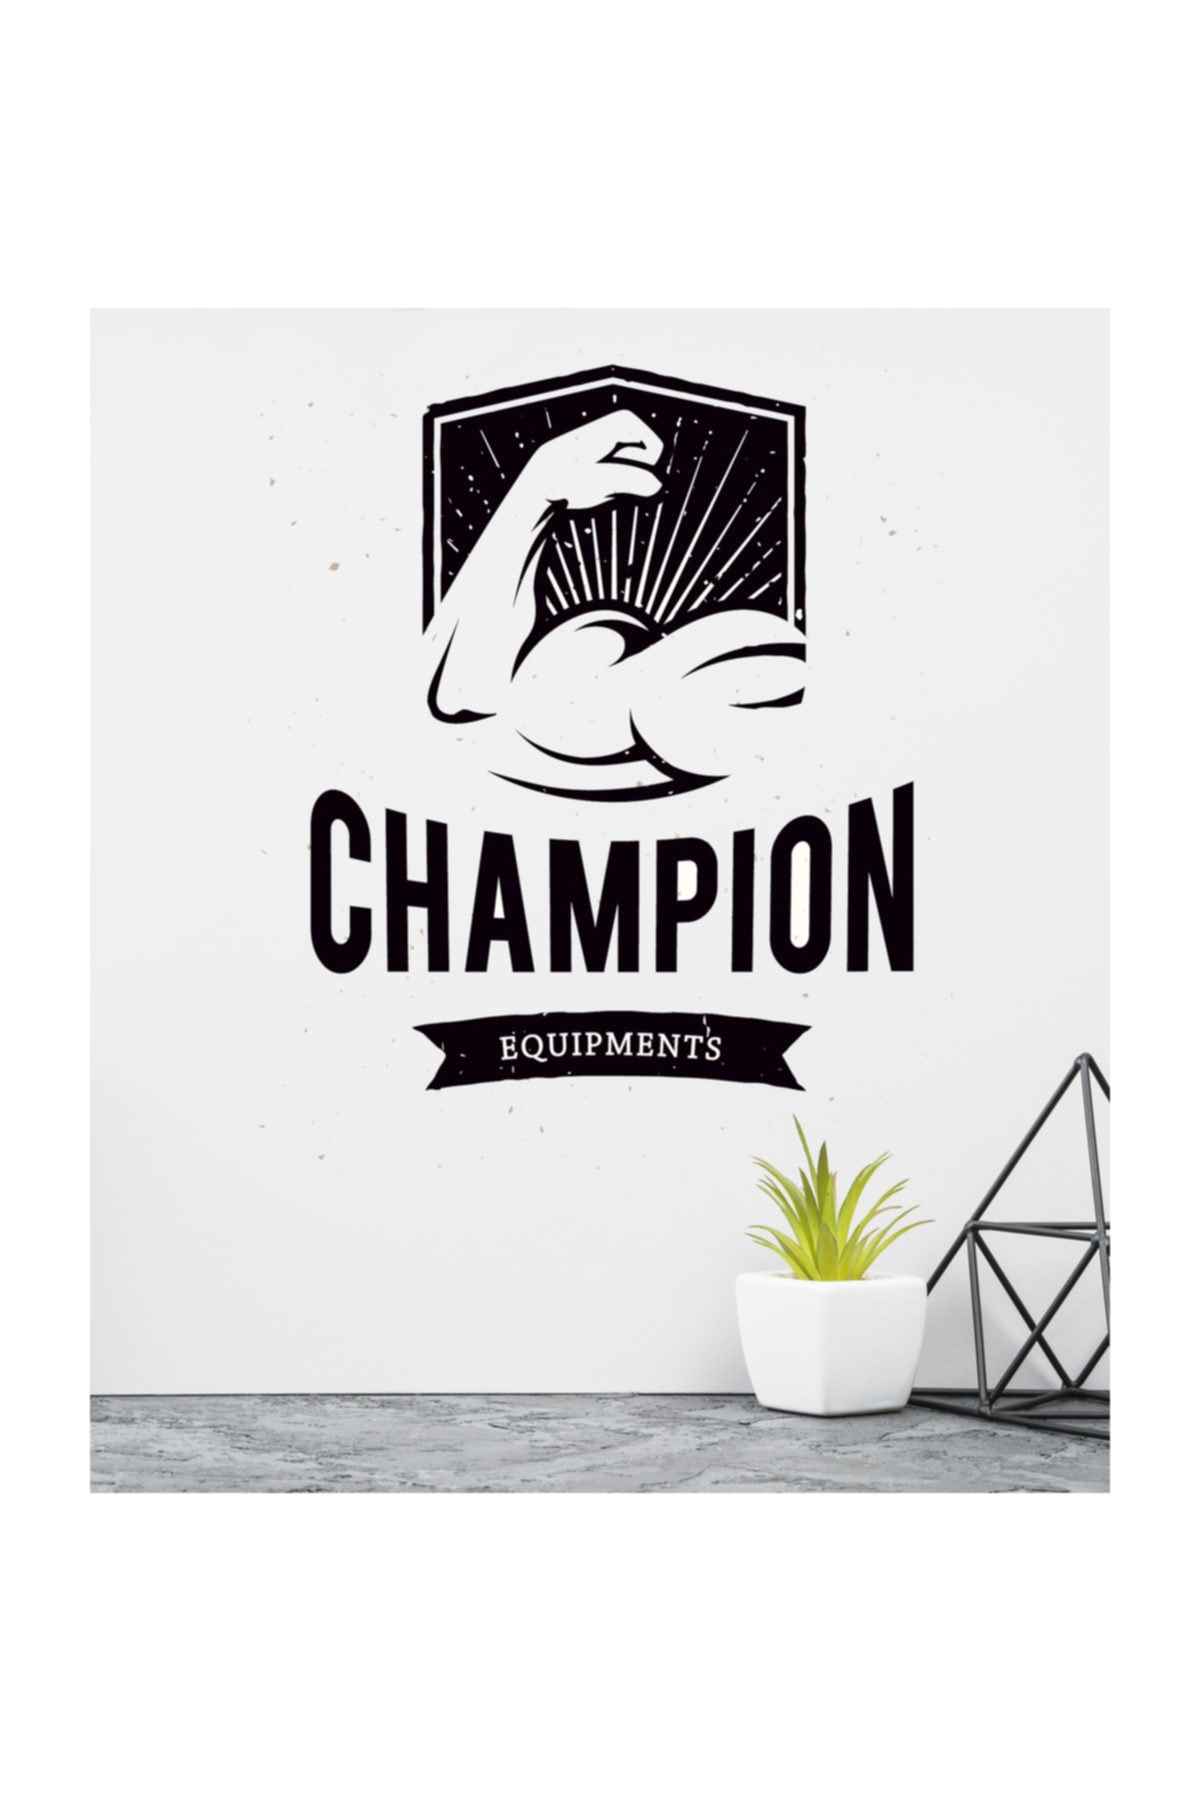 Champion Fitness Equipments Dekoratif Duvar Sticker